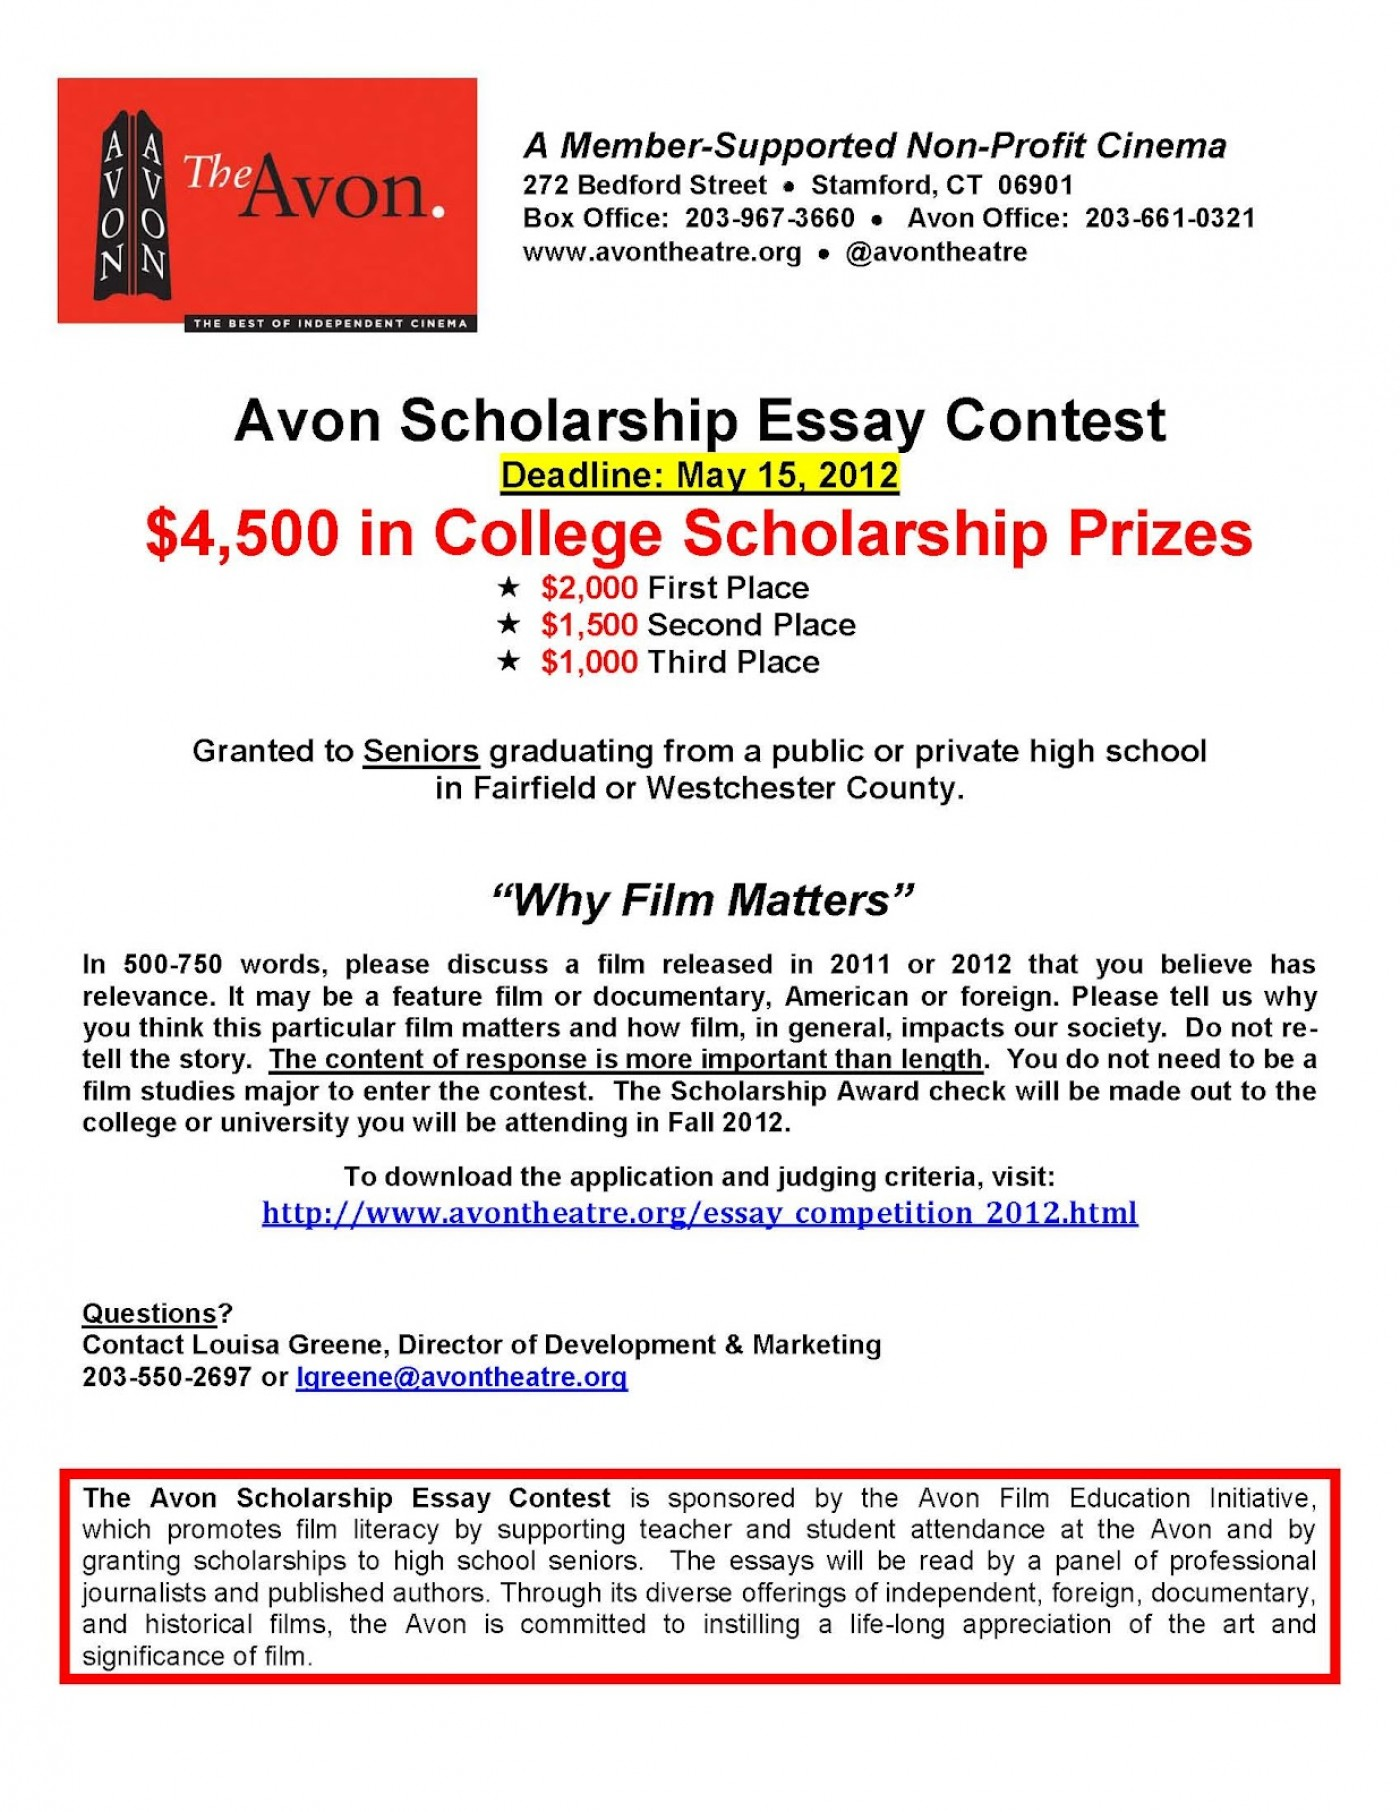 016 Avonscholarshipessaycontest2012flyer Essay Example Shocking Scholarships For High School Sophomores No 2018 1400